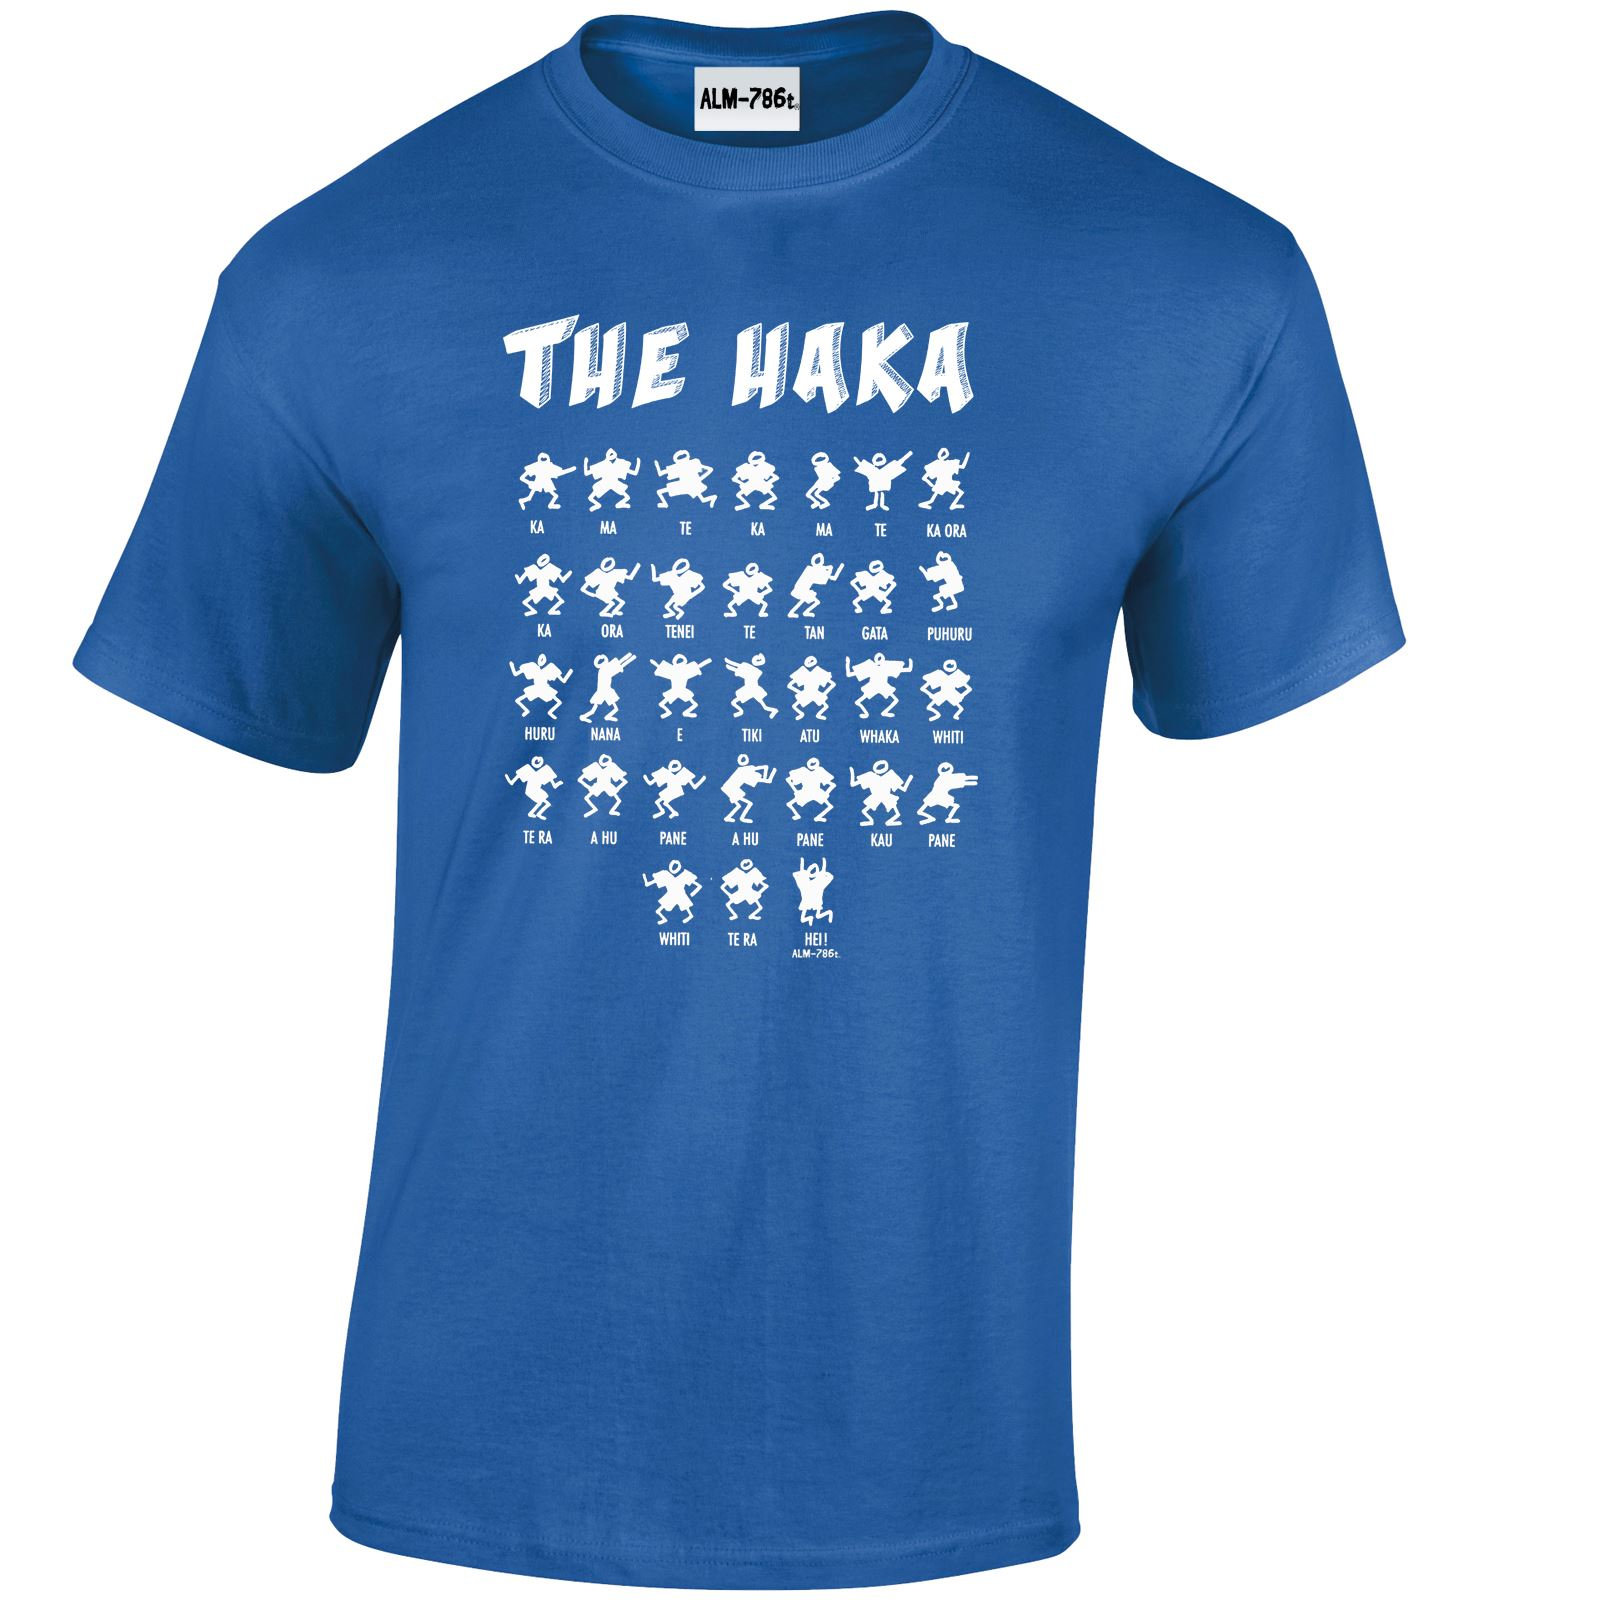 Haka Action Silhouette Mens Womens New Zealand All Tshirt Top Black Funny Rugby